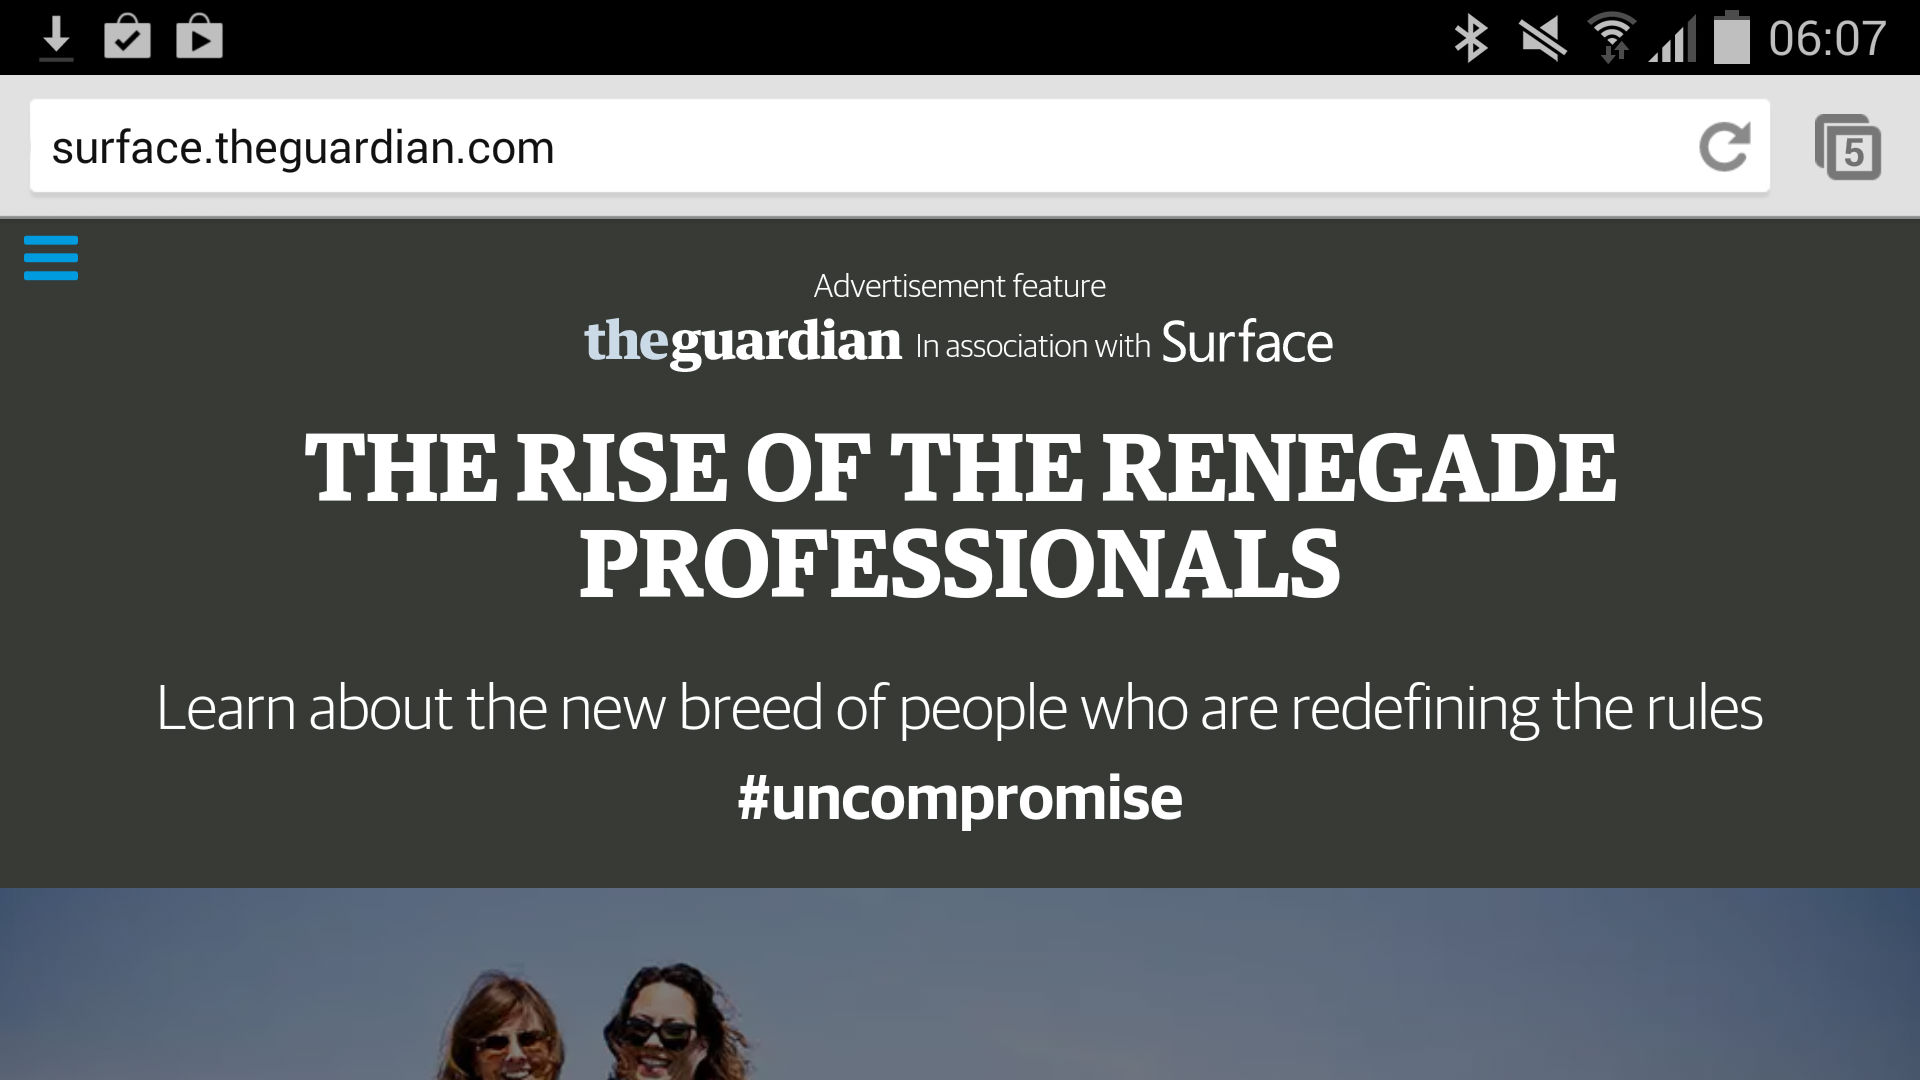 Microsoft message to renegade professionals I'm not a big fan of Microsoft but in fairness to the company they are working hard on making their cloud products competitive. The latest is their announcement of free office 365 unlimited storage